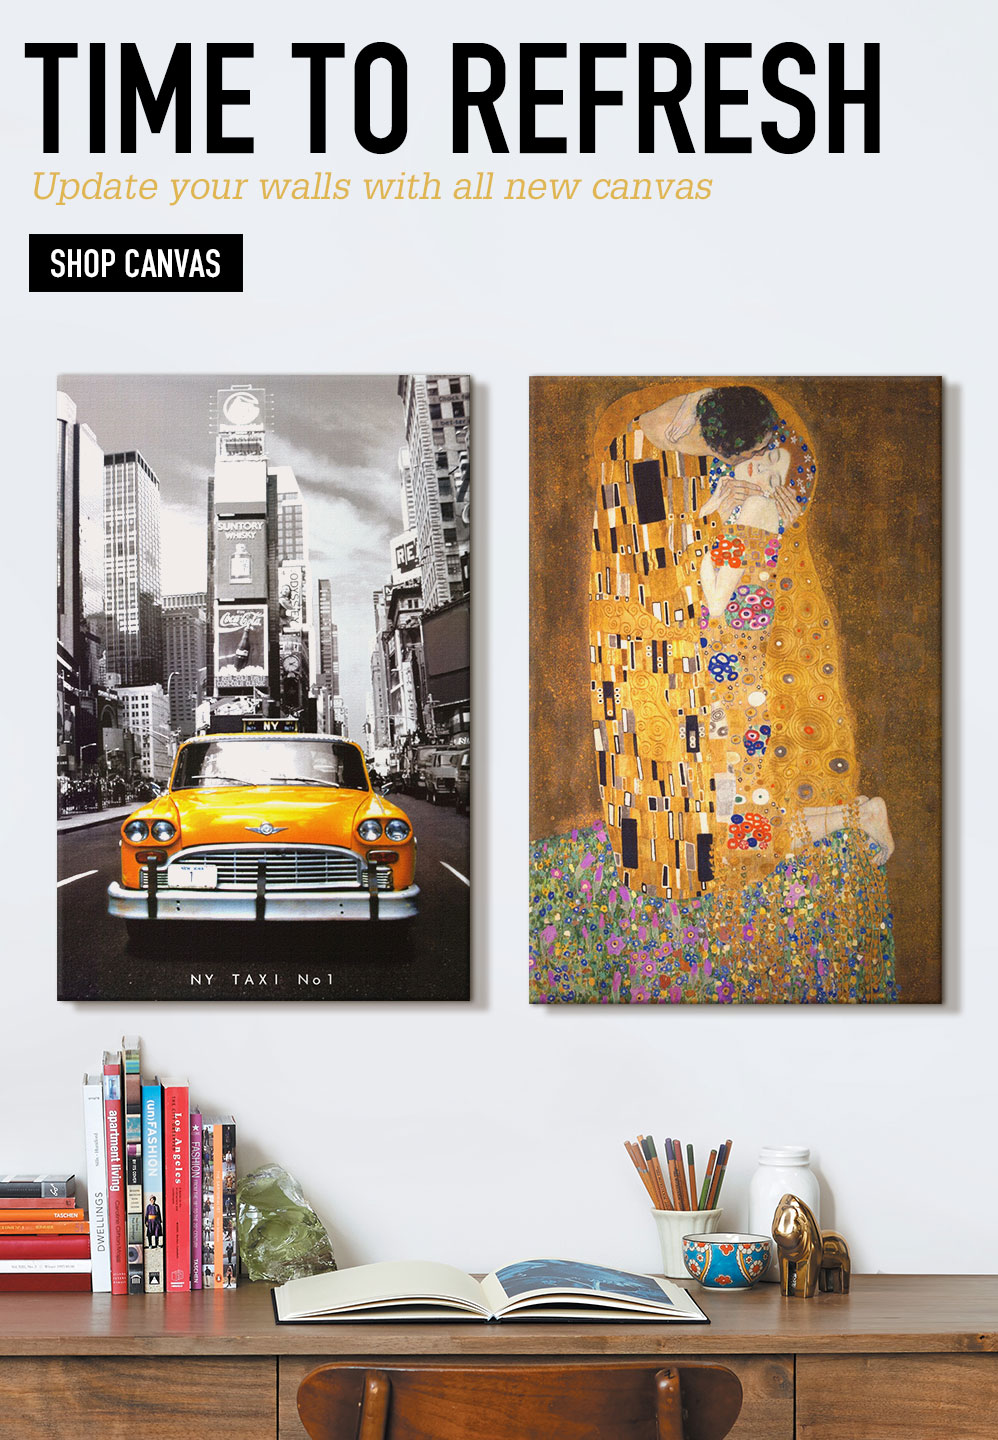 TIME TO REFRESH. Update your walls with all new canvas. SHOP CANVAS